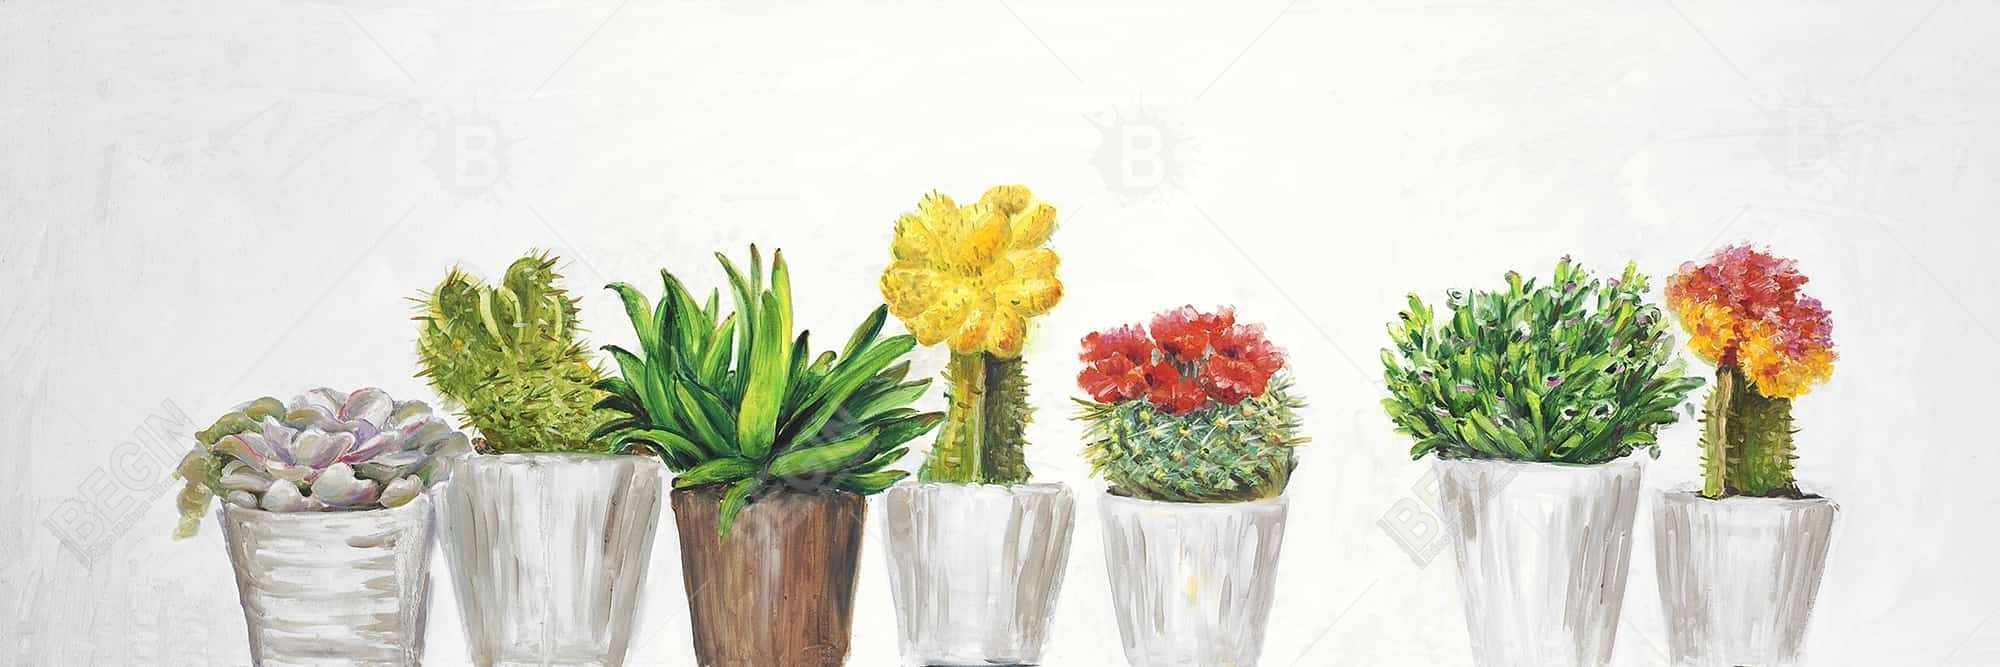 Small cactus and succulents